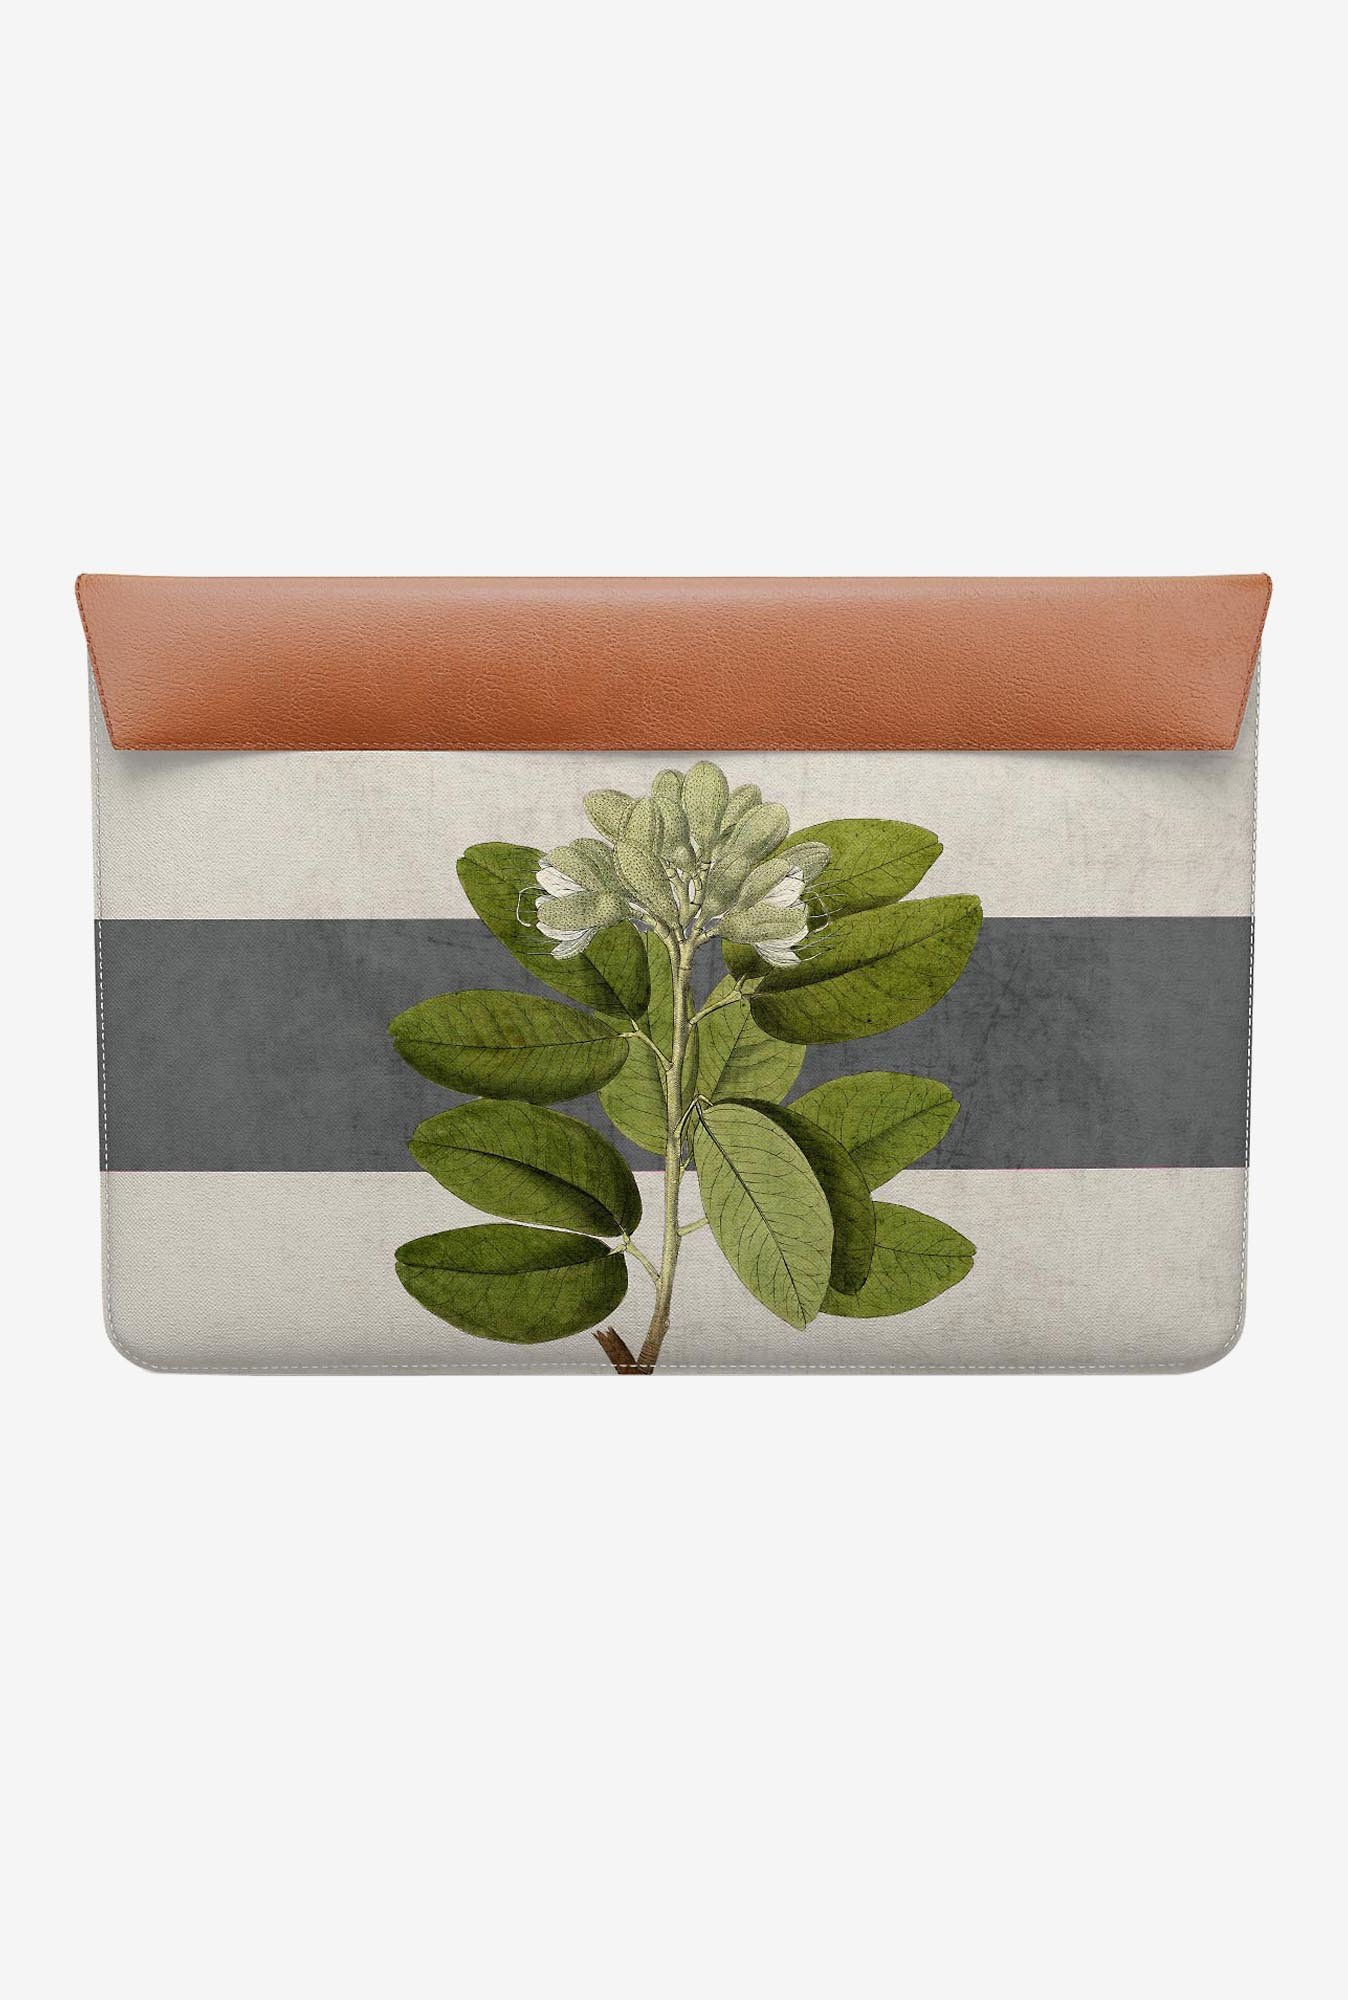 DailyObjects Botanical 5 MacBook Pro 13 Envelope Sleeve